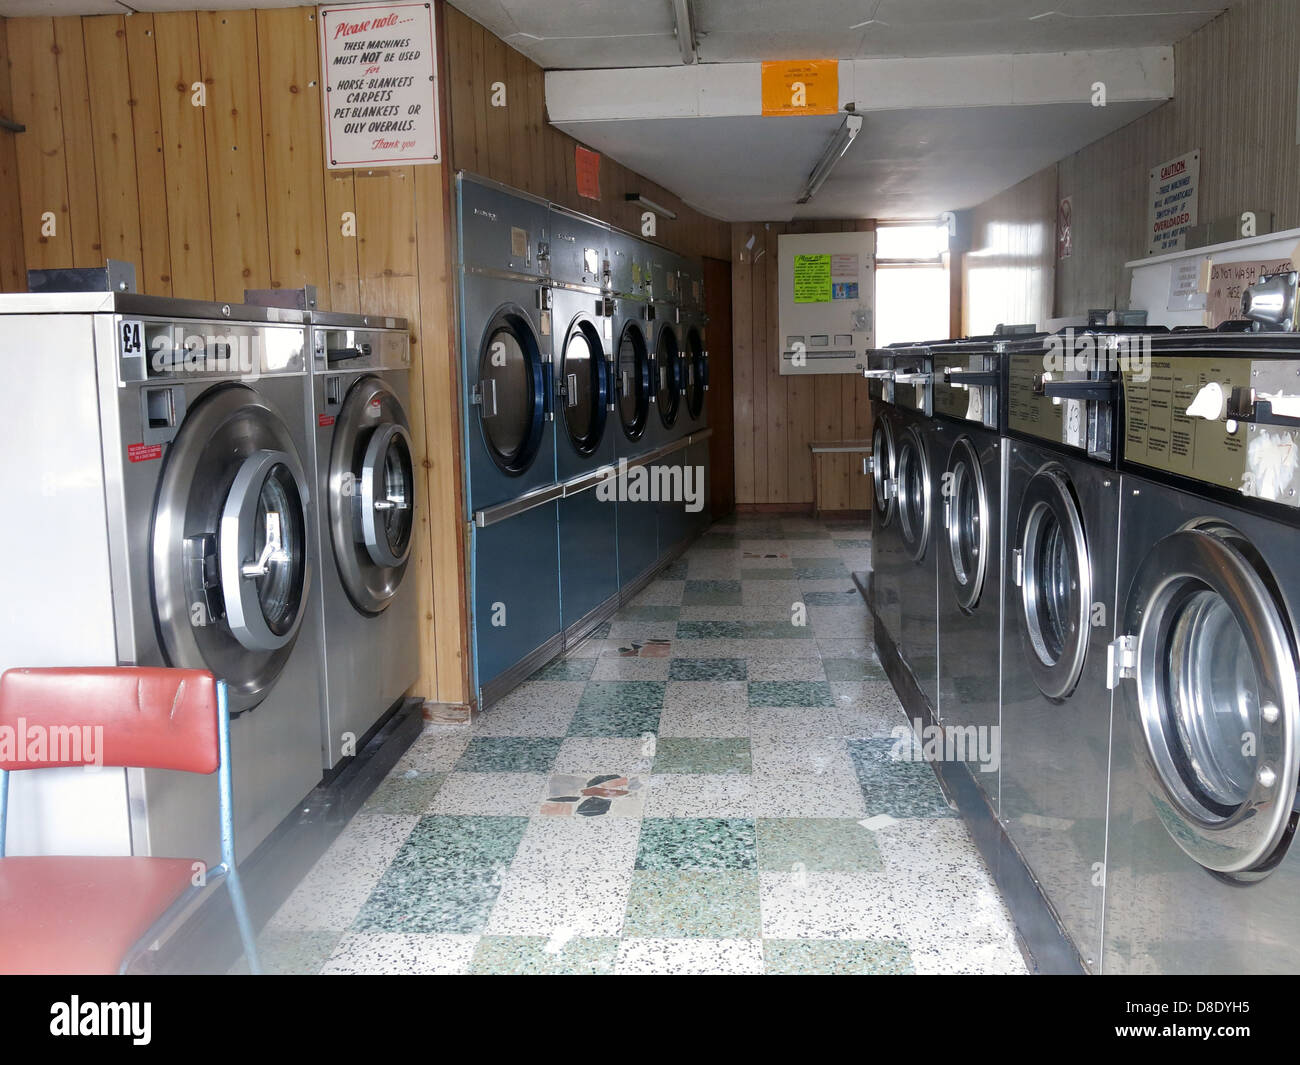 washing,drying,dryers,machine,dolly,tub,dollytub,the,old,service,washes,threatened,treatened,under,threat,undertreat,tradition,high,st,street,closed,closing,disappearing,disappear,Warrington,Grappenhall,Penketh,shops,parade,of,dry,clean,centre,coin,operated,coin-op,coin,op,stainless,steel,bendix,gotonysmith Hotpoint Candy,Buy Pictures of,Buy Images Of